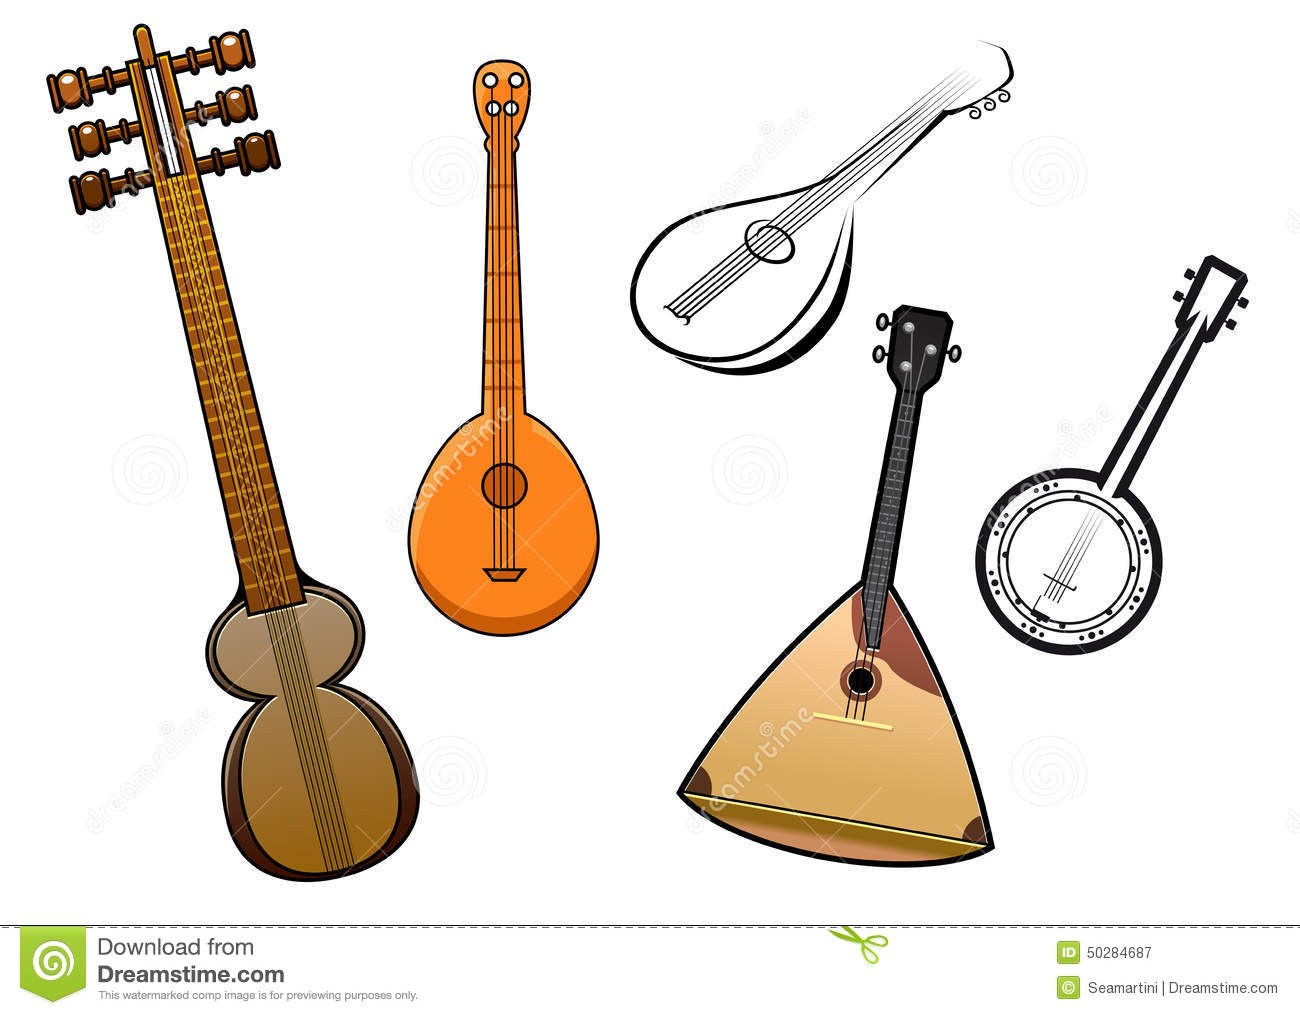 string instruments Aimed at producers looking for high-quality ready-to-go string sections for modern productions, session strings produces immediate results without hours of fine.